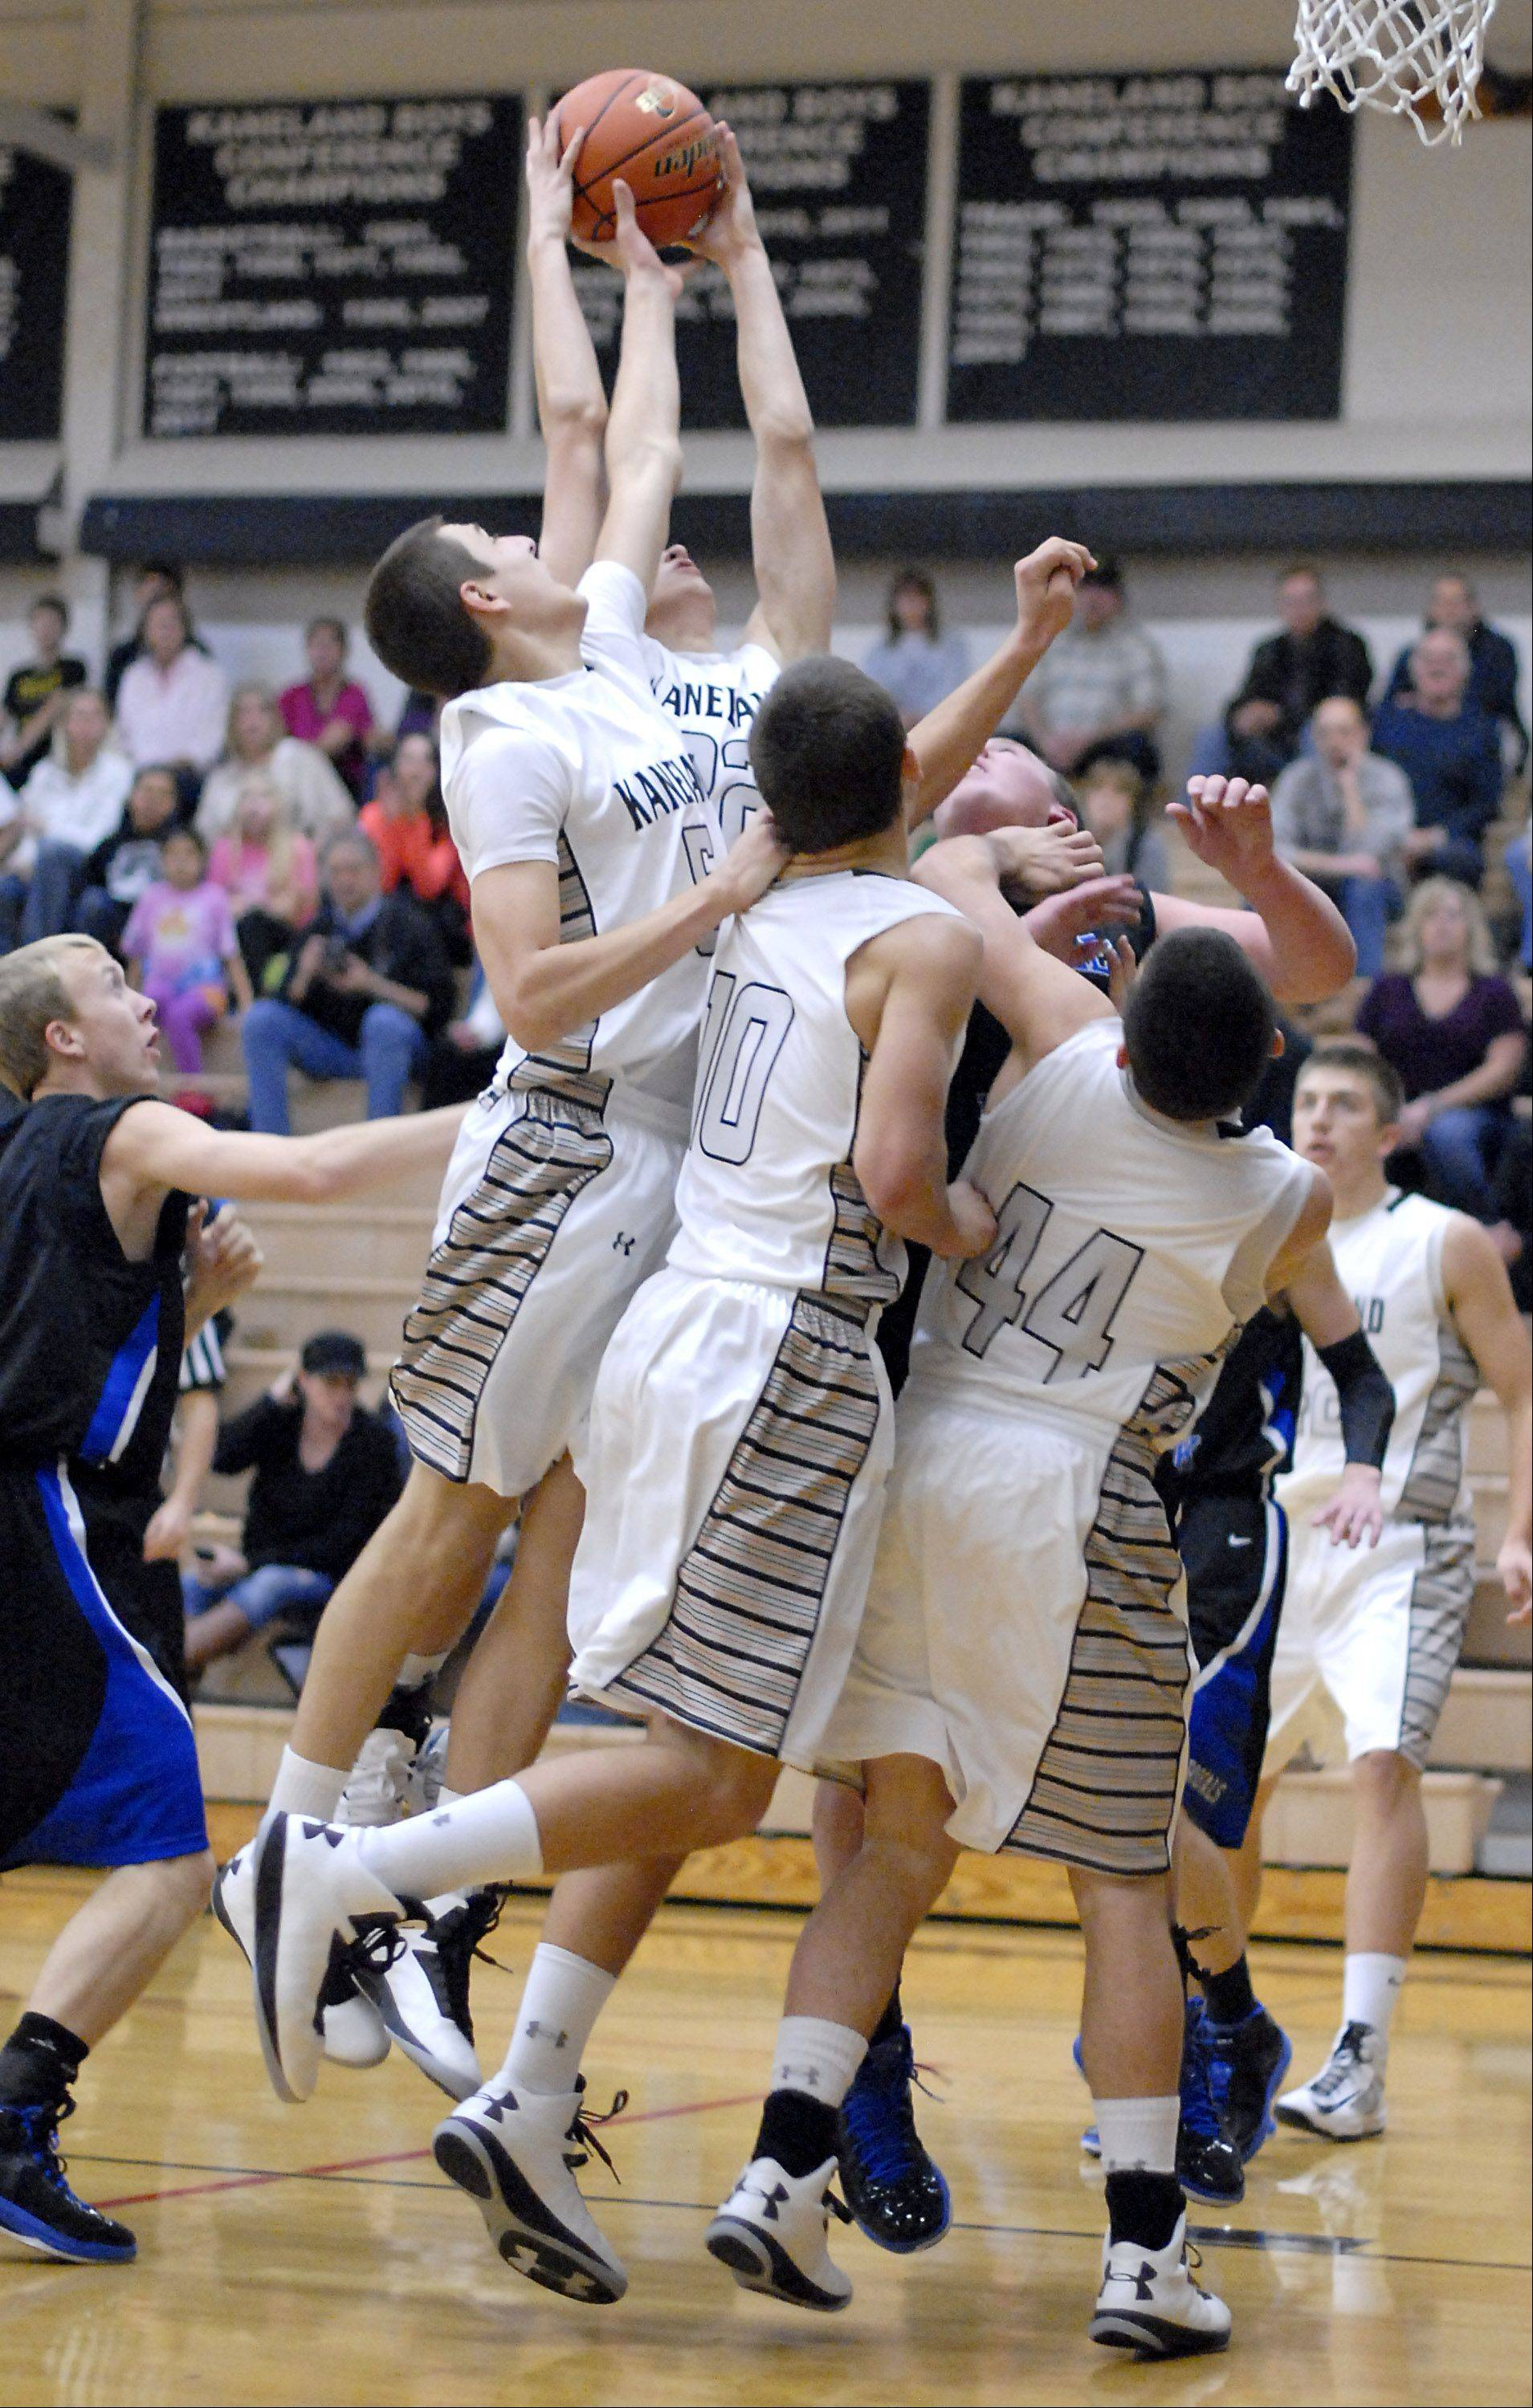 Kaneland's John Pruett and Dan Miller reach for a rebound in the first quarter.